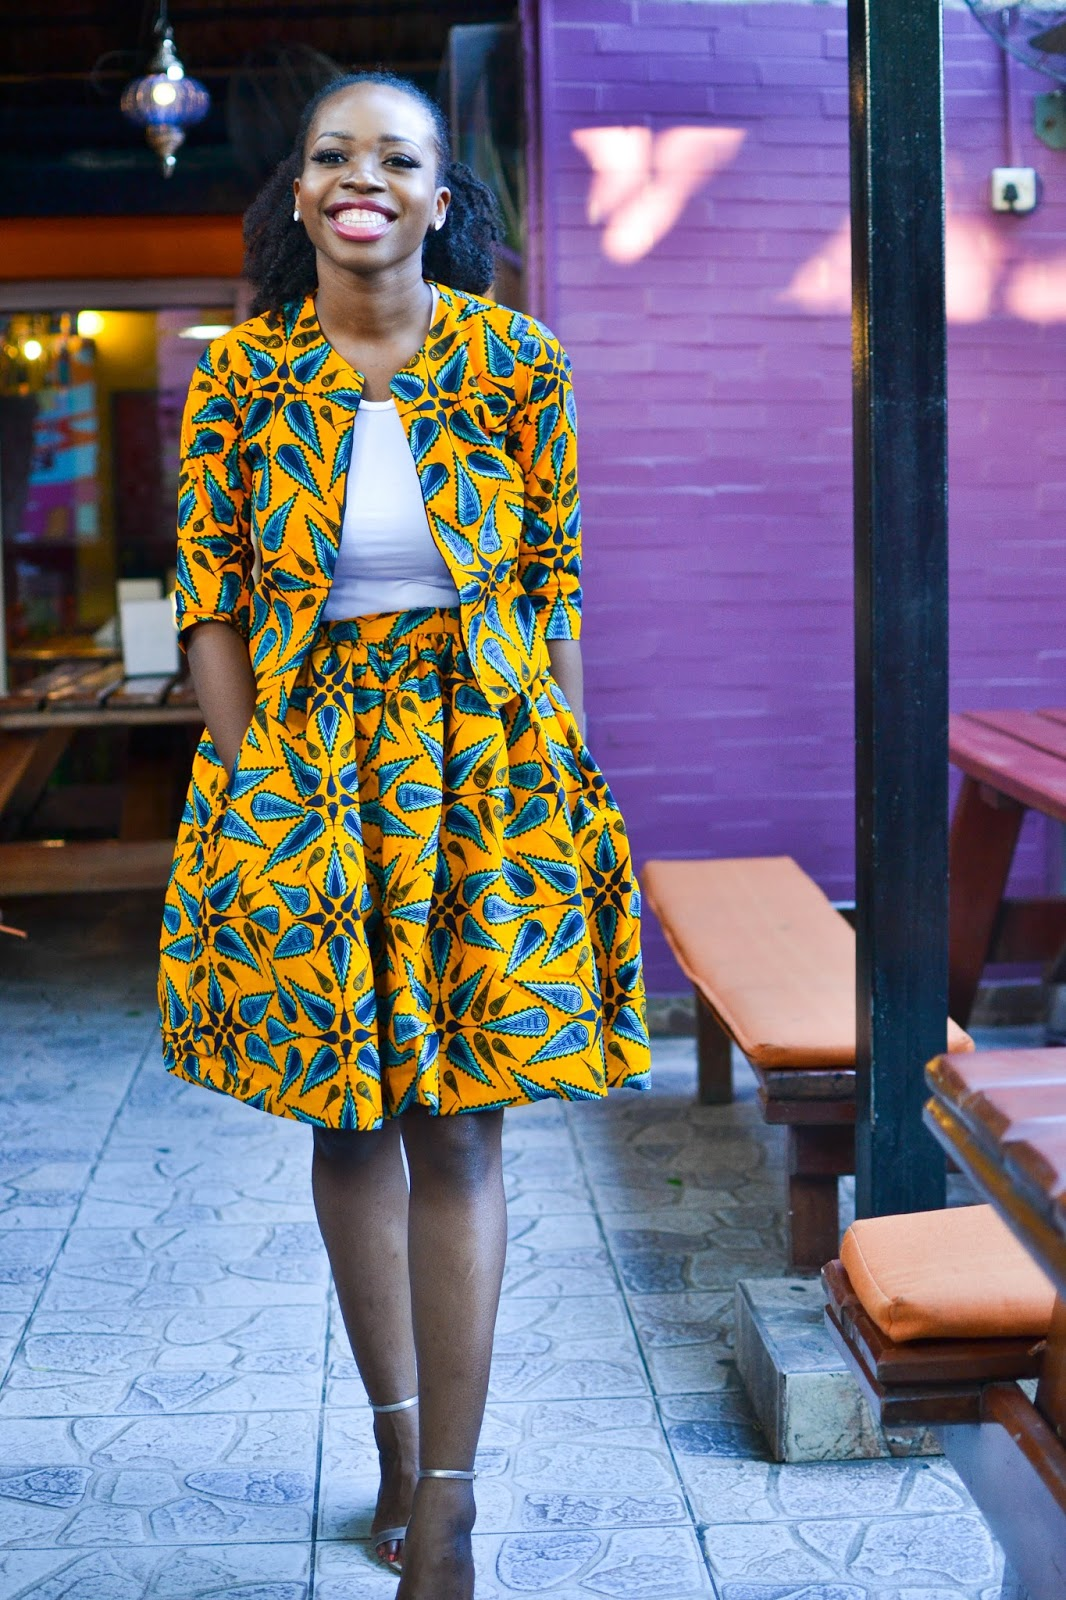 African Fashion Blogger with Amazing Smile